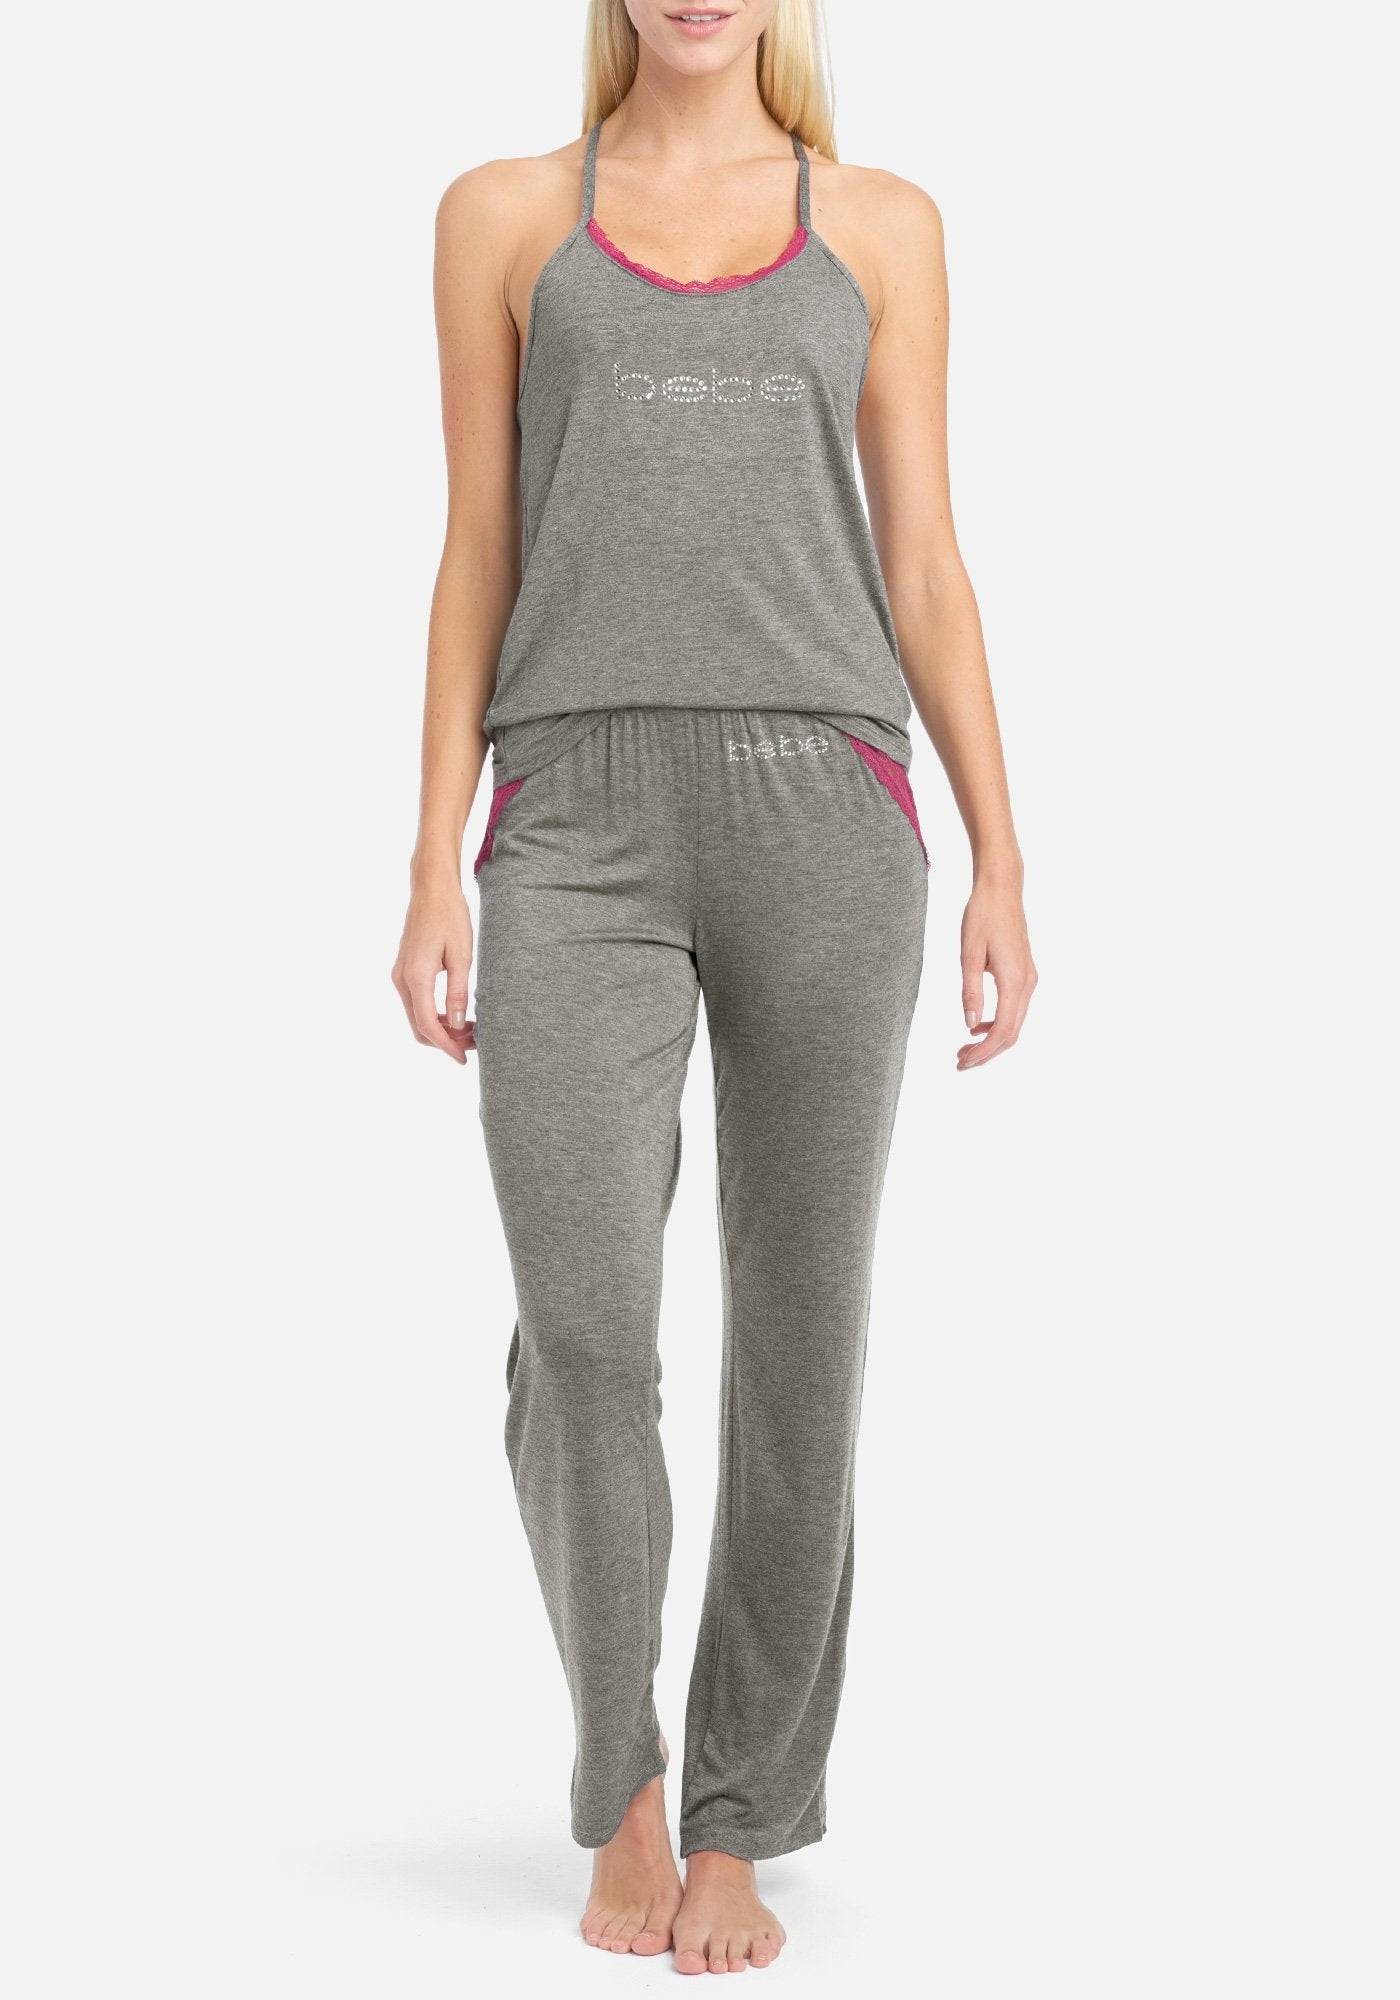 bebe Women's Bebe Lace Contrast Pant Set, Size Medium in Charcoal Heather Spandex